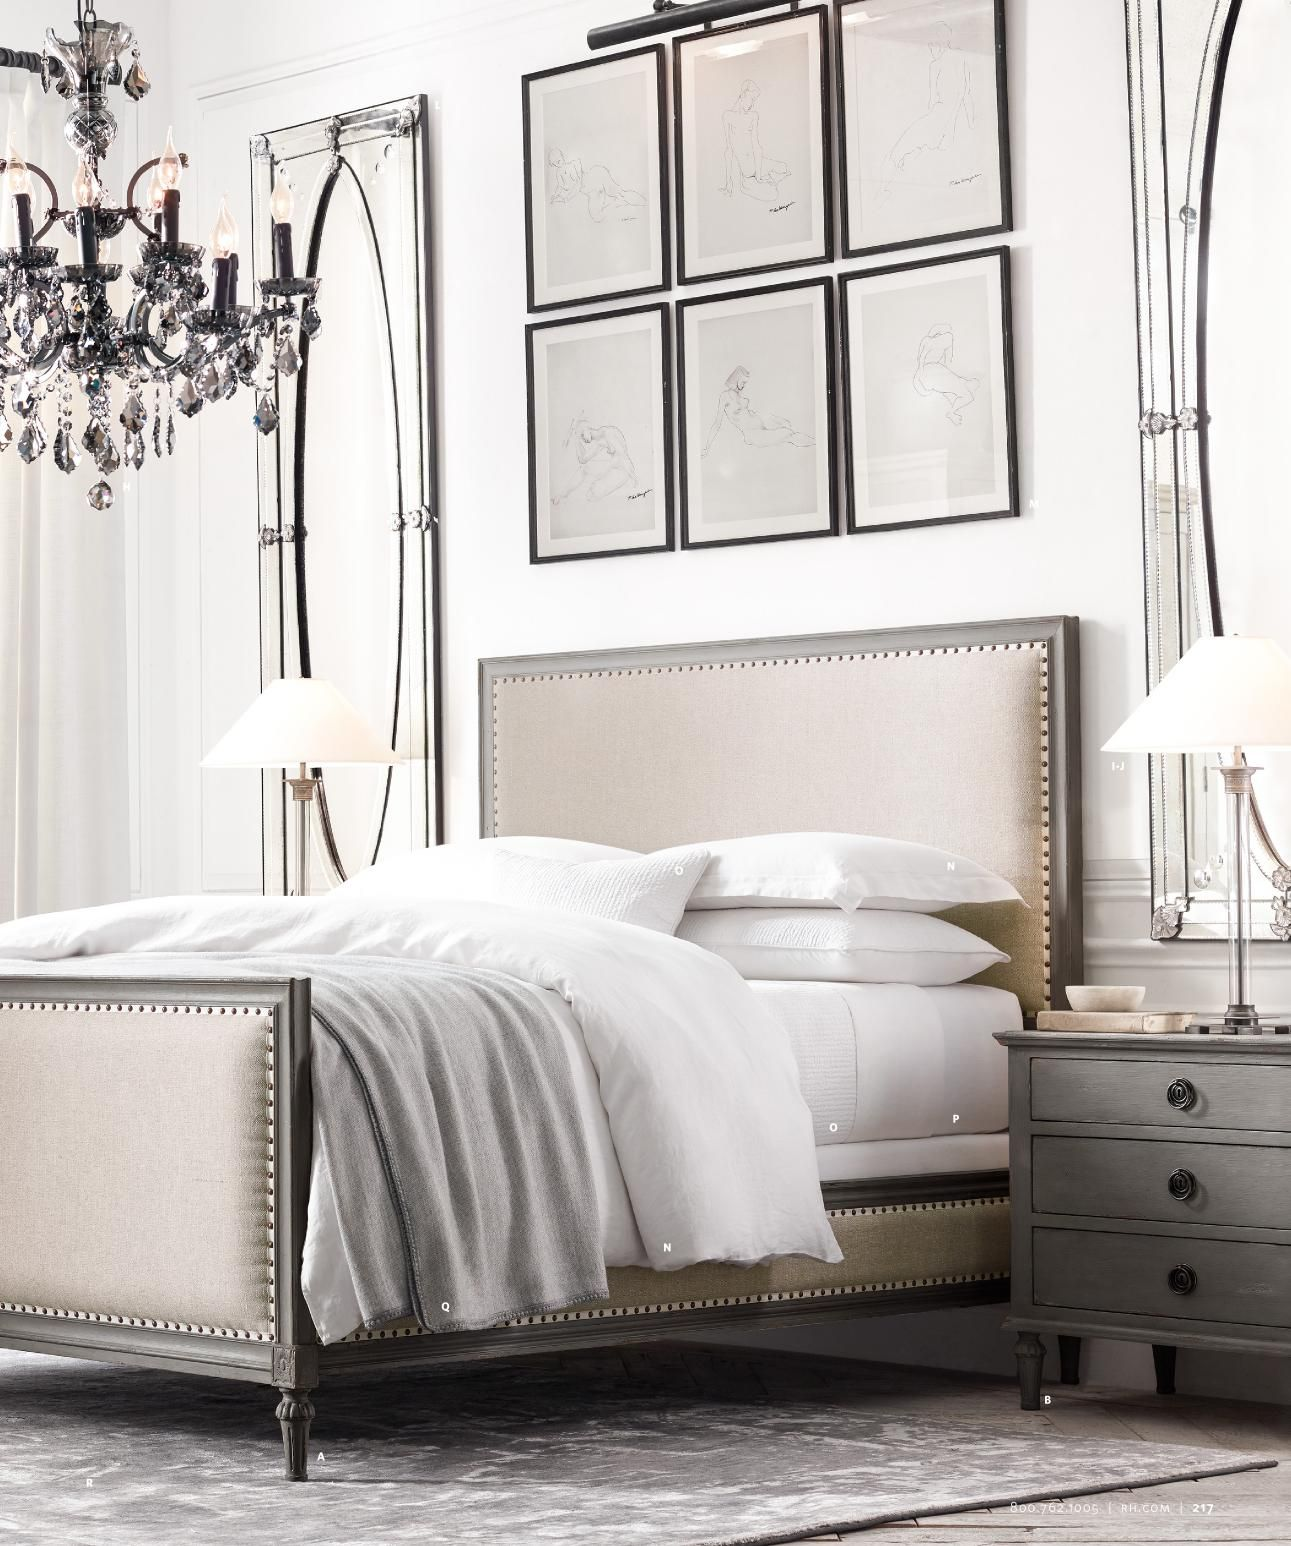 Bedroom Design Gallery For Inspiration: RH Bedroom Ideas And Inspiration #bedroom #bedroomdecor